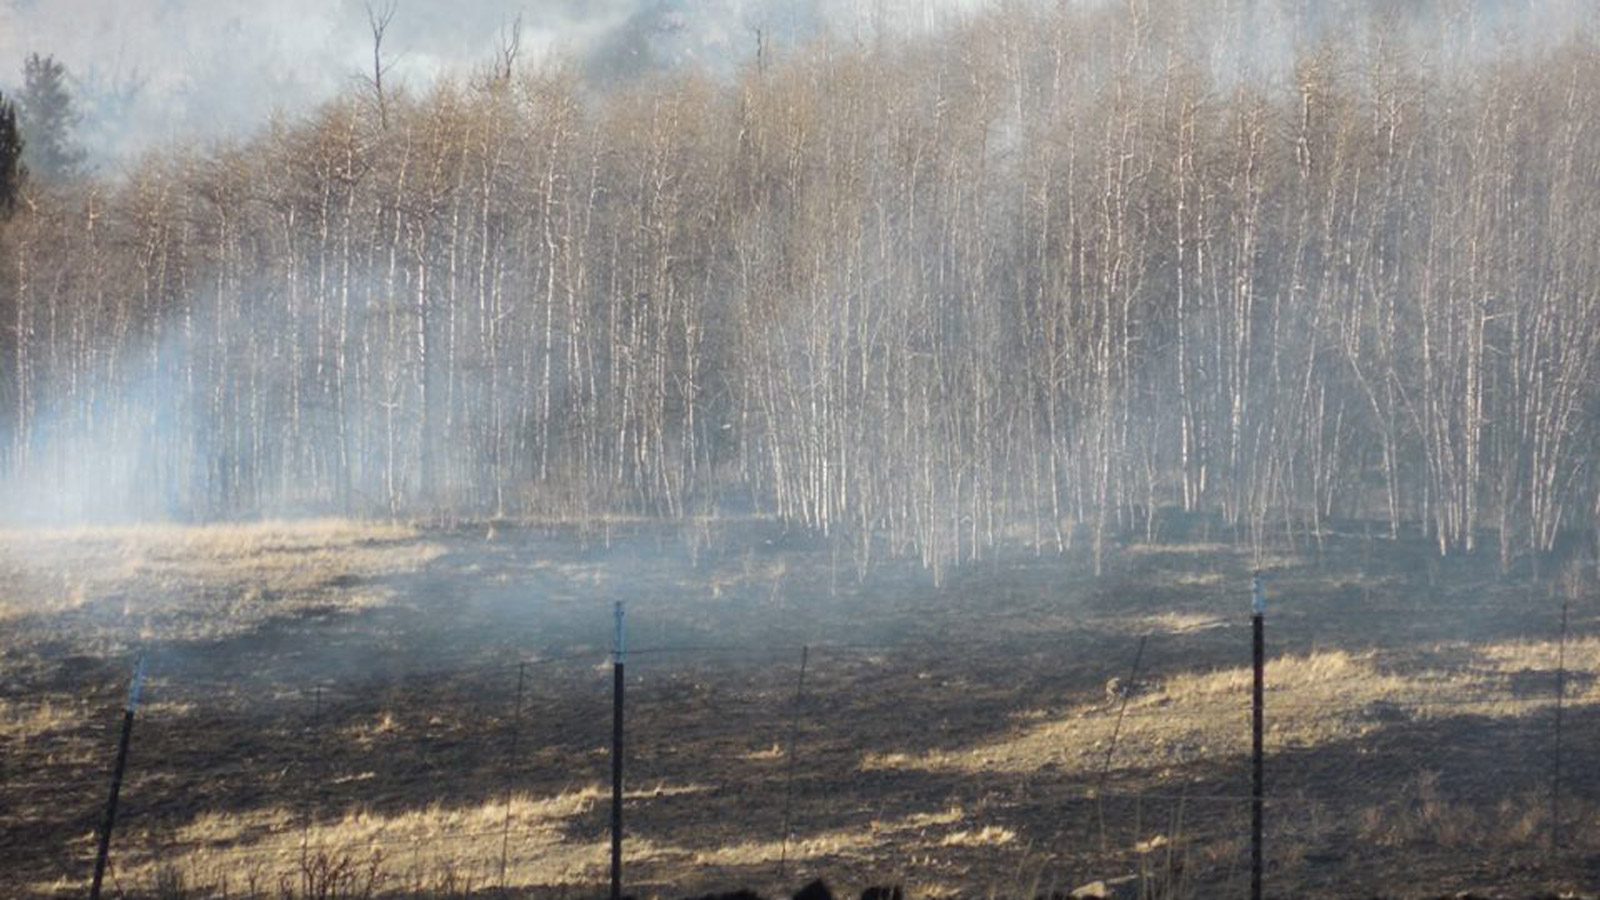 Snyder Creek 2 Fire (credit: Sherrie Muldoon)